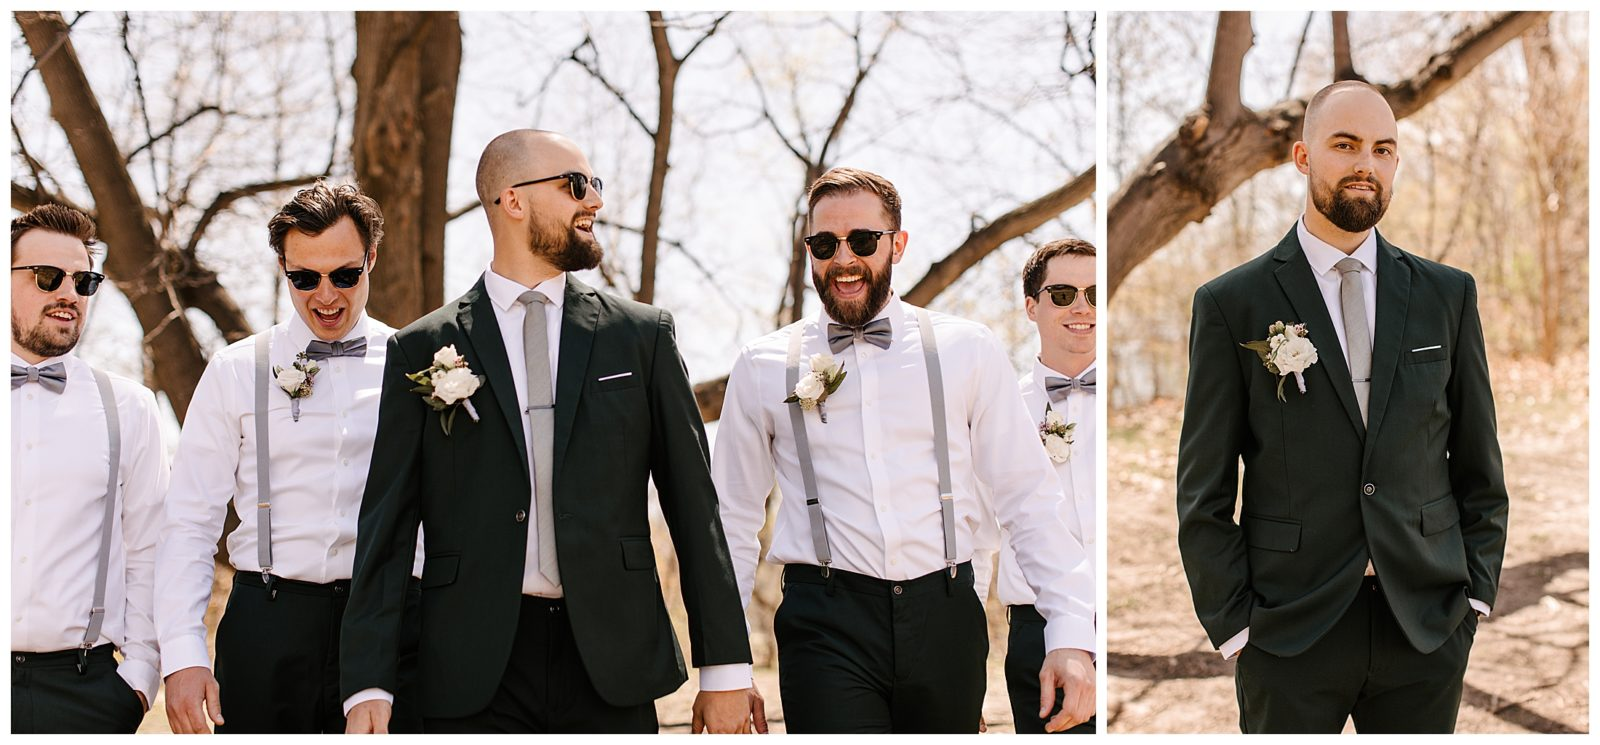 Silverwood Park wedding | May 4th wedding | Tigerlily Photography | Sixpence Events and Planning day of coordinating | green groom's suit, groomsmen in gray suspenders and bowtie